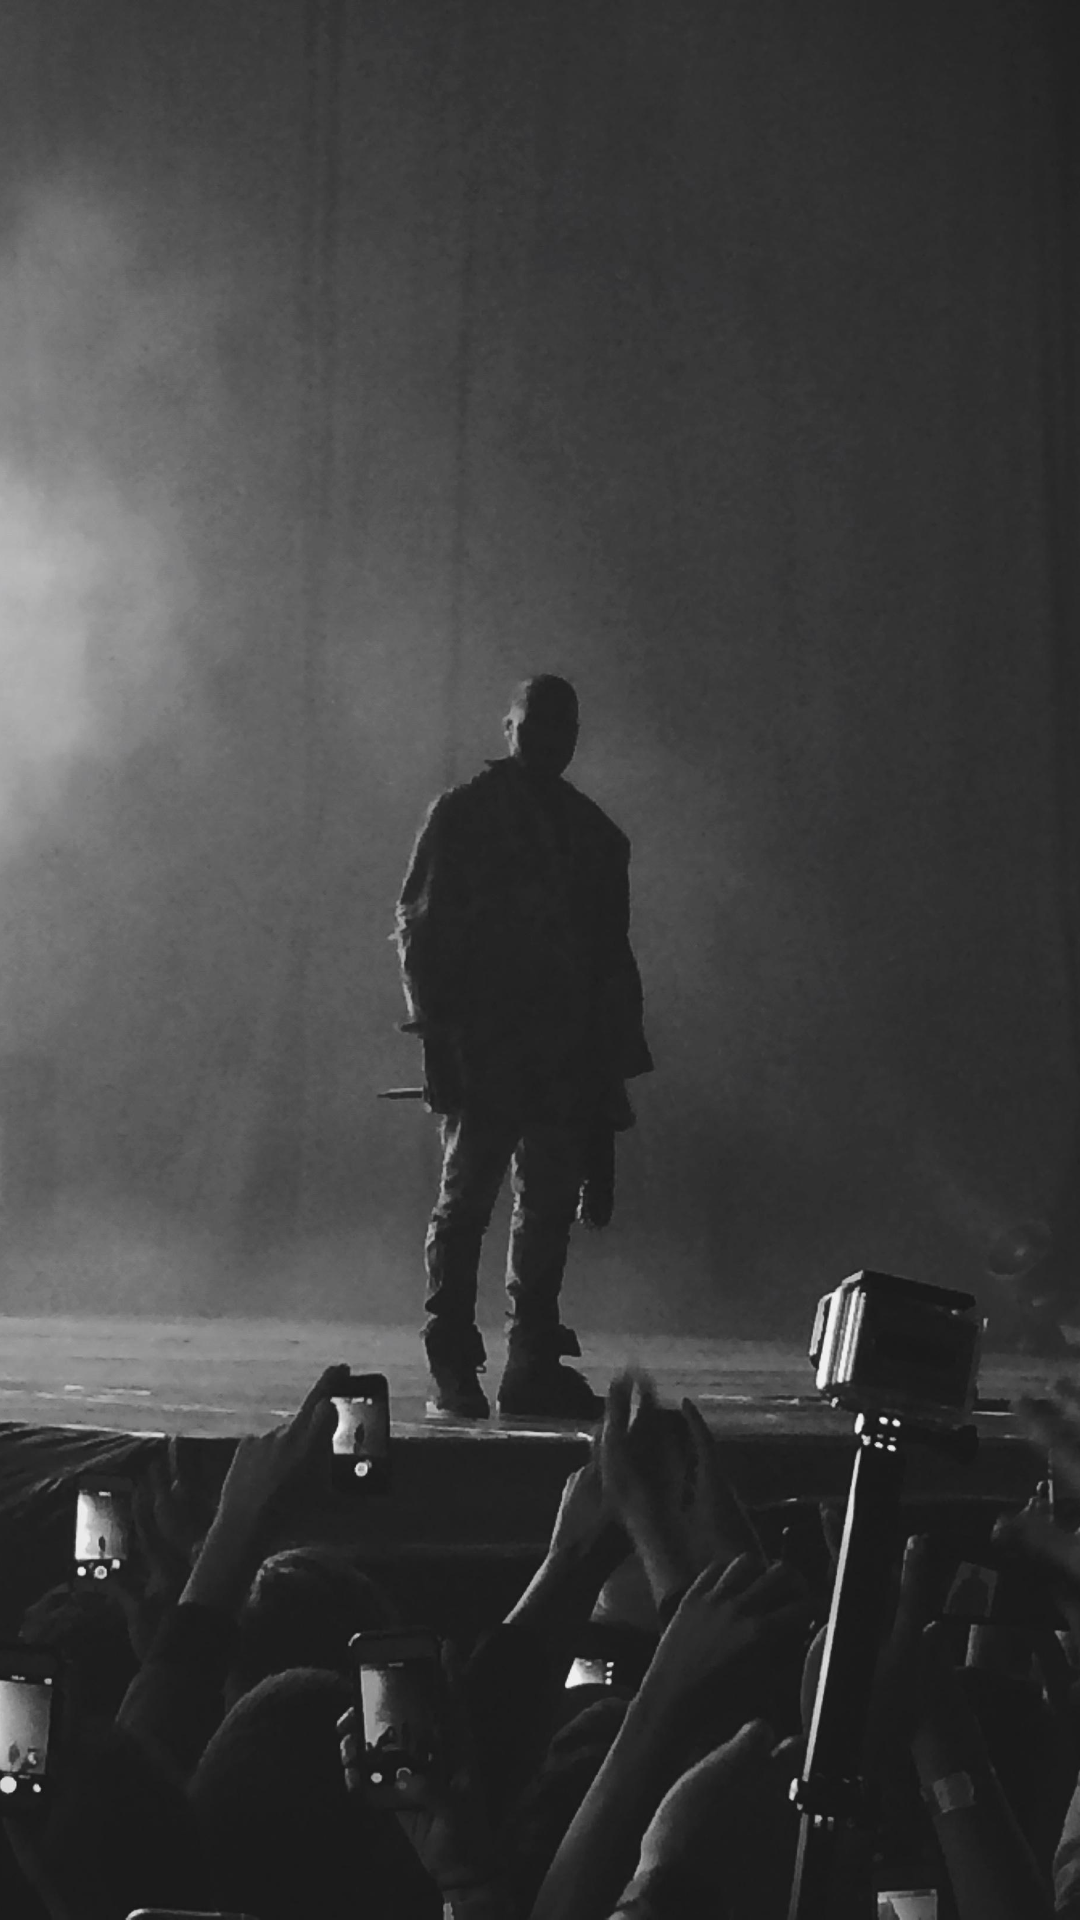 Kanye West Hd Wallpapers For Iphone 6s Plus Wallpapers Pictures